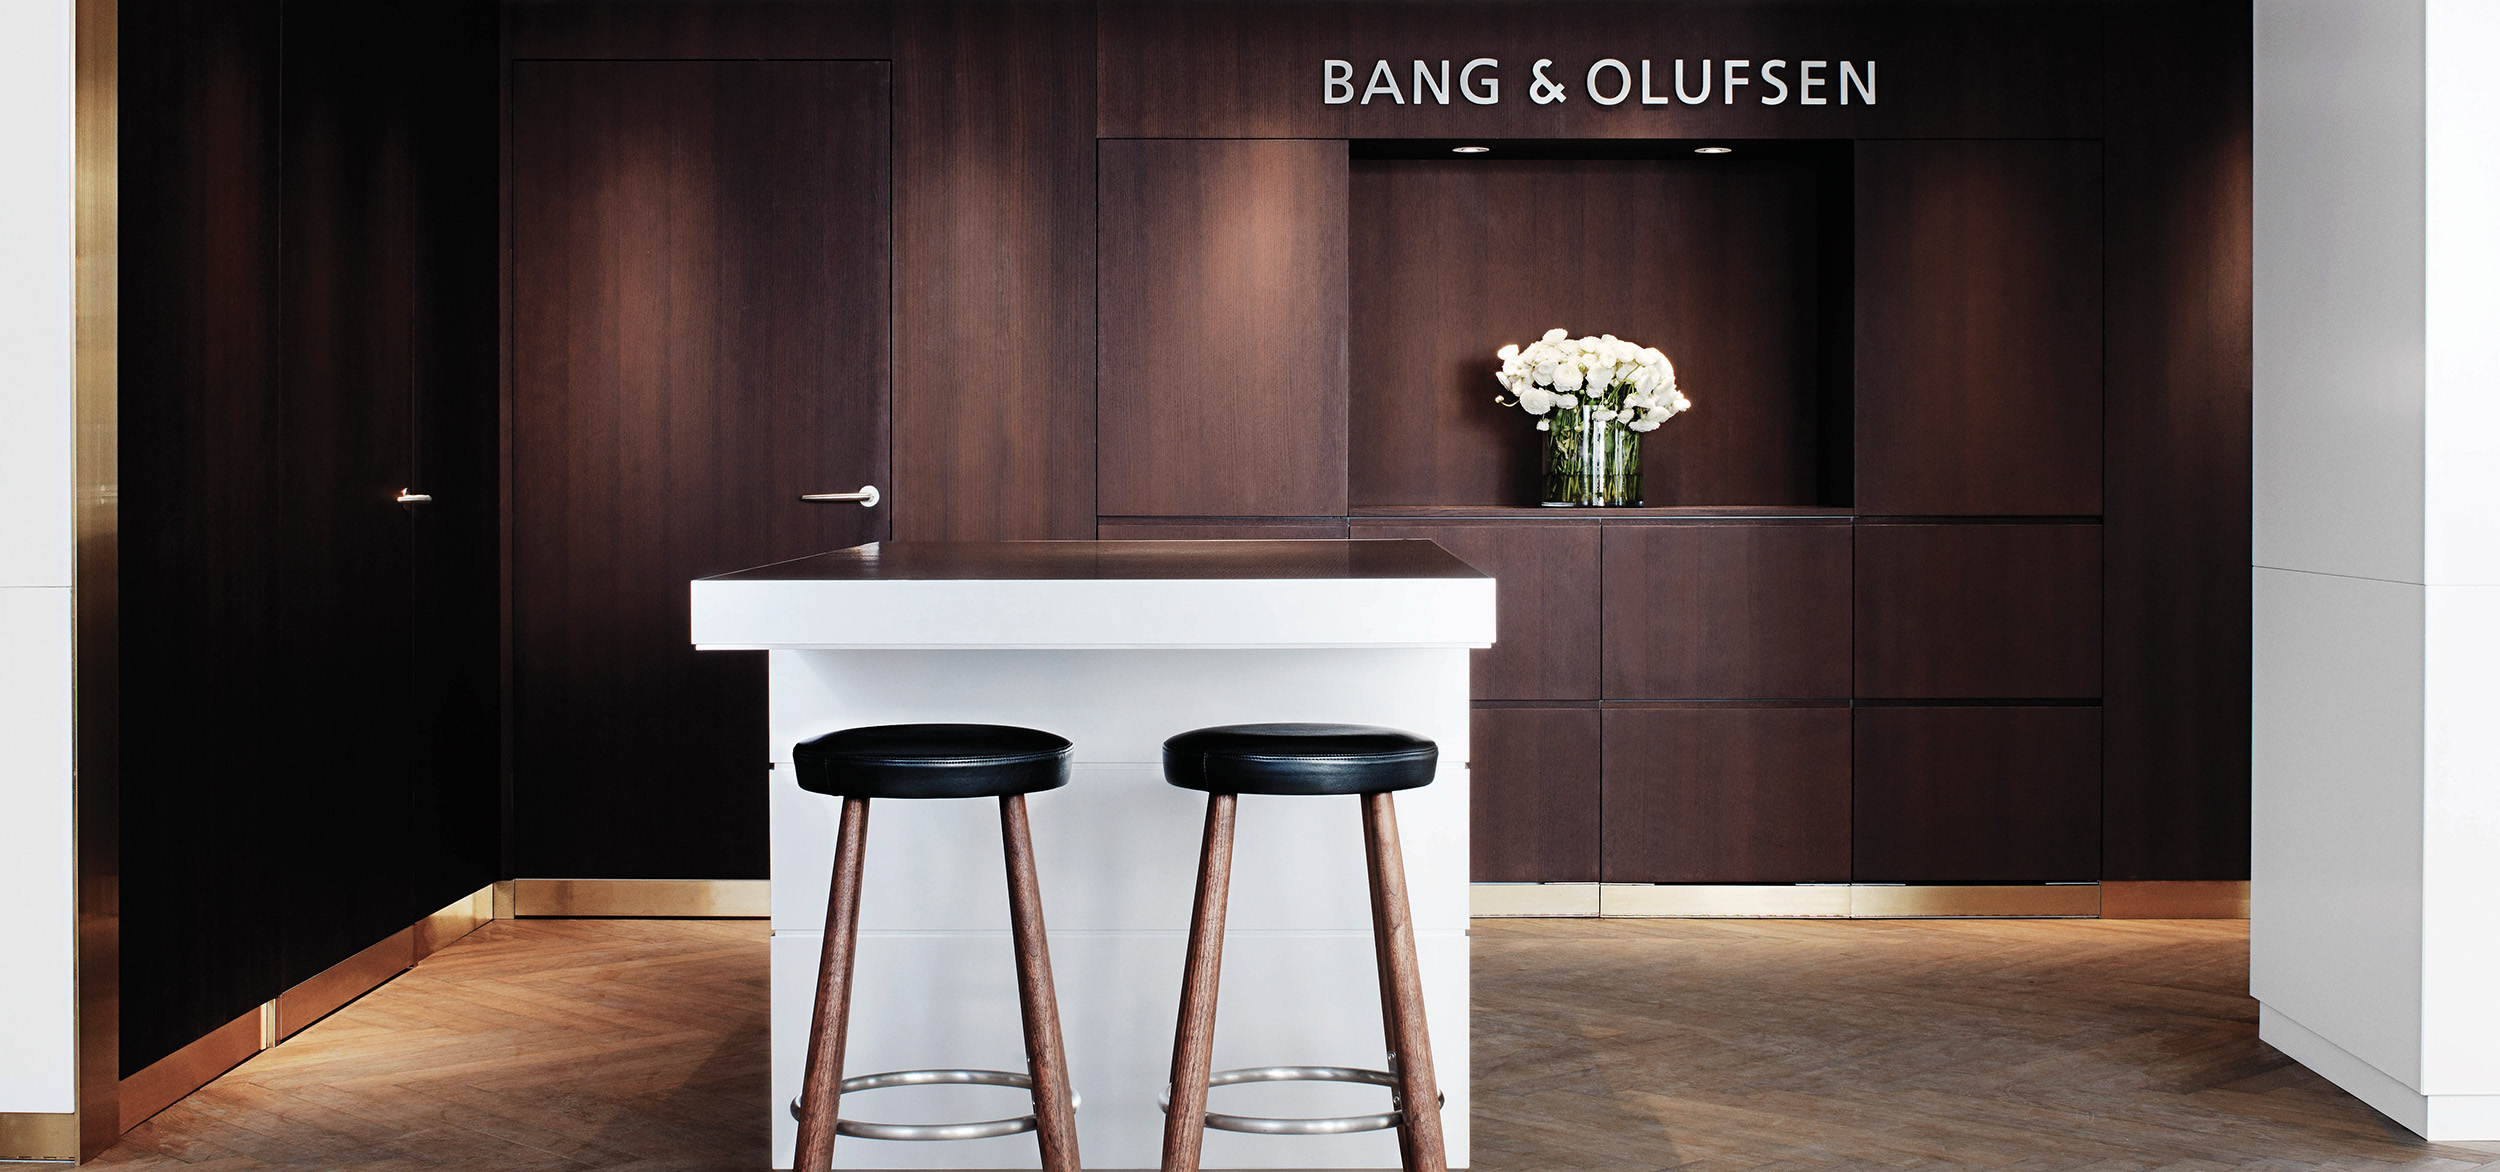 Two bar stools standing in front of white counter at Bang & Olufsen store in Copenhagen